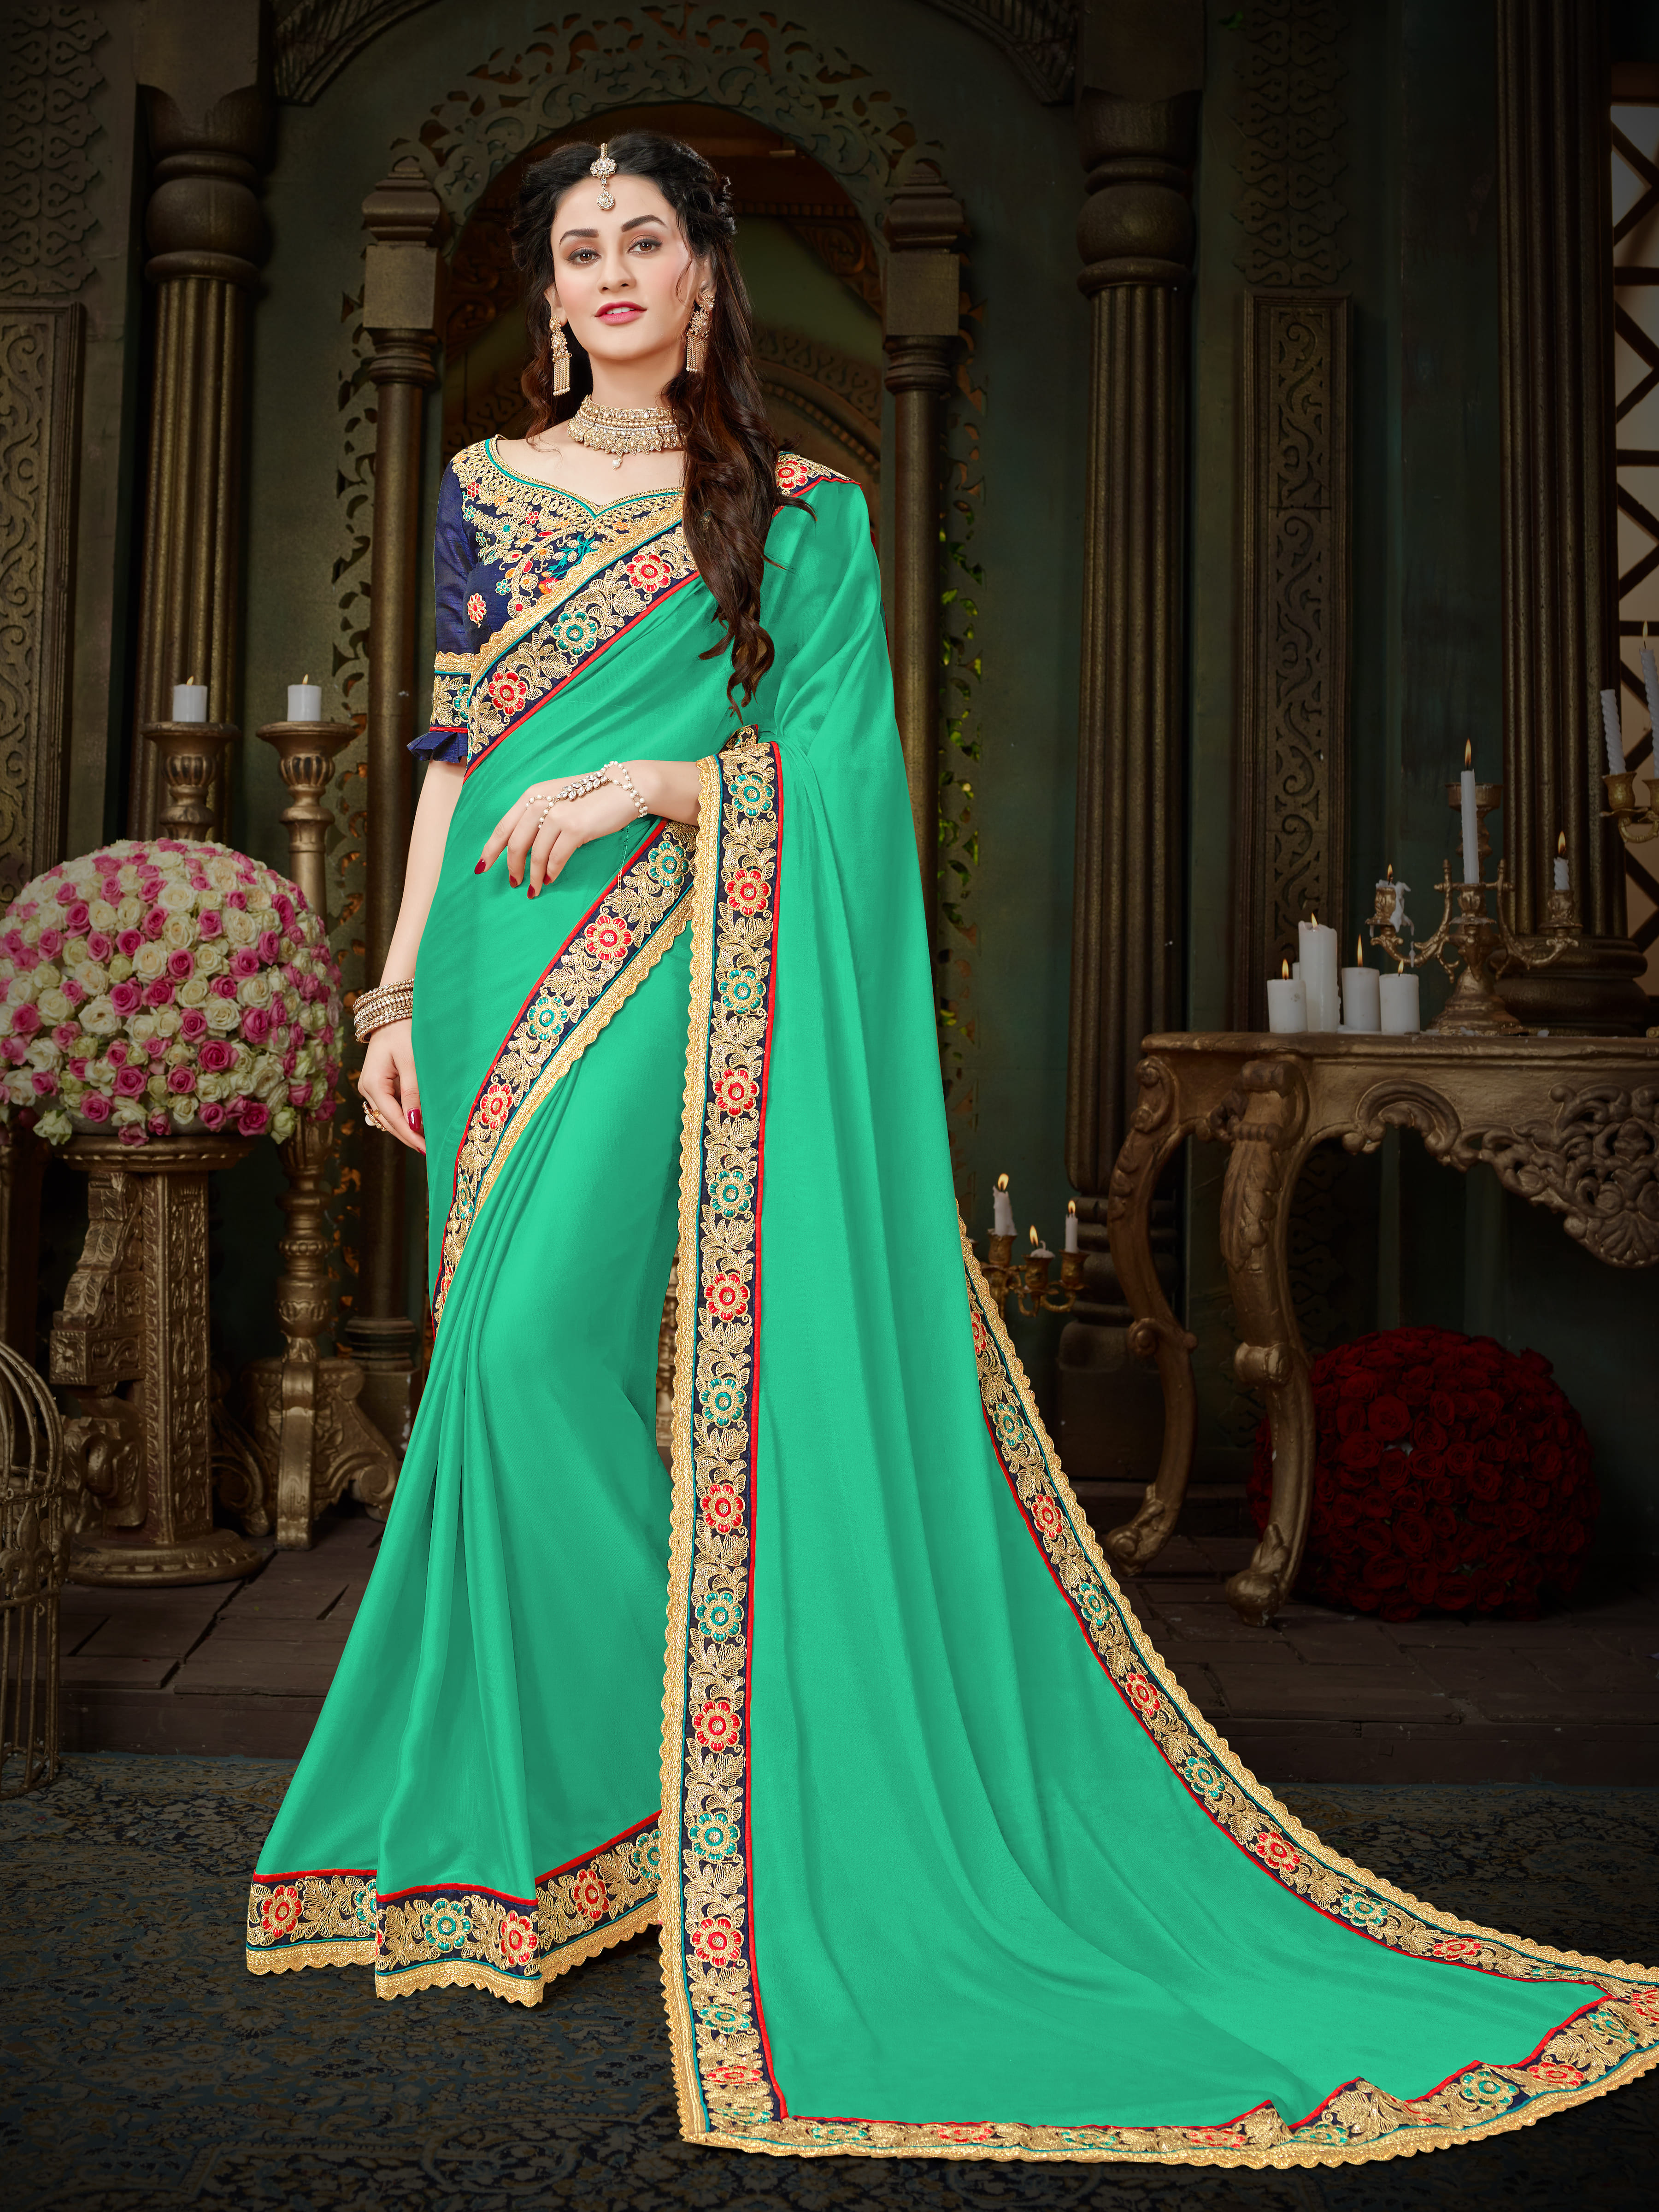 2f68abf5d1459b Manohari Turquoise Embroidered Georgette Saree with Blouse -  Onlinefayda.com - 2631906